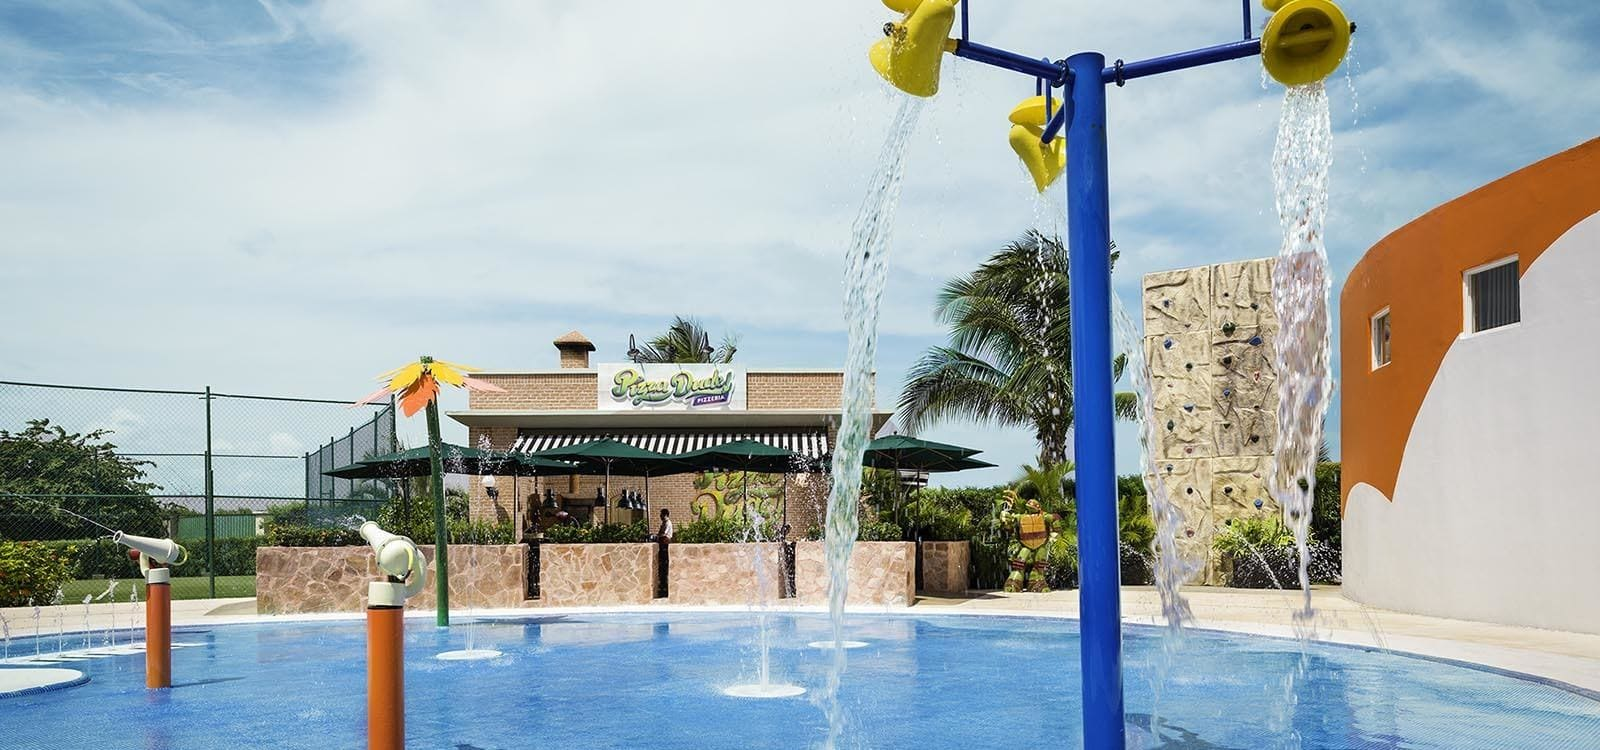 Azul Beach Hotel in Cancun welcomes families with babies and toddlers